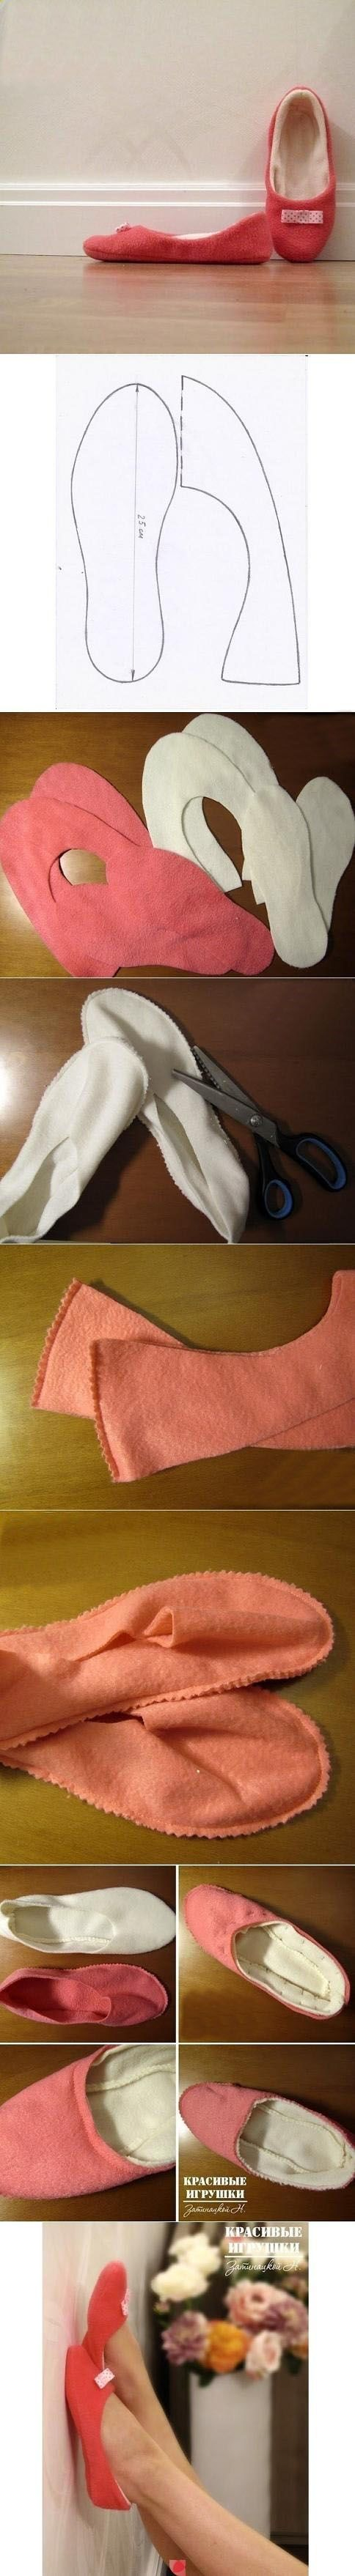 Sewing slippers